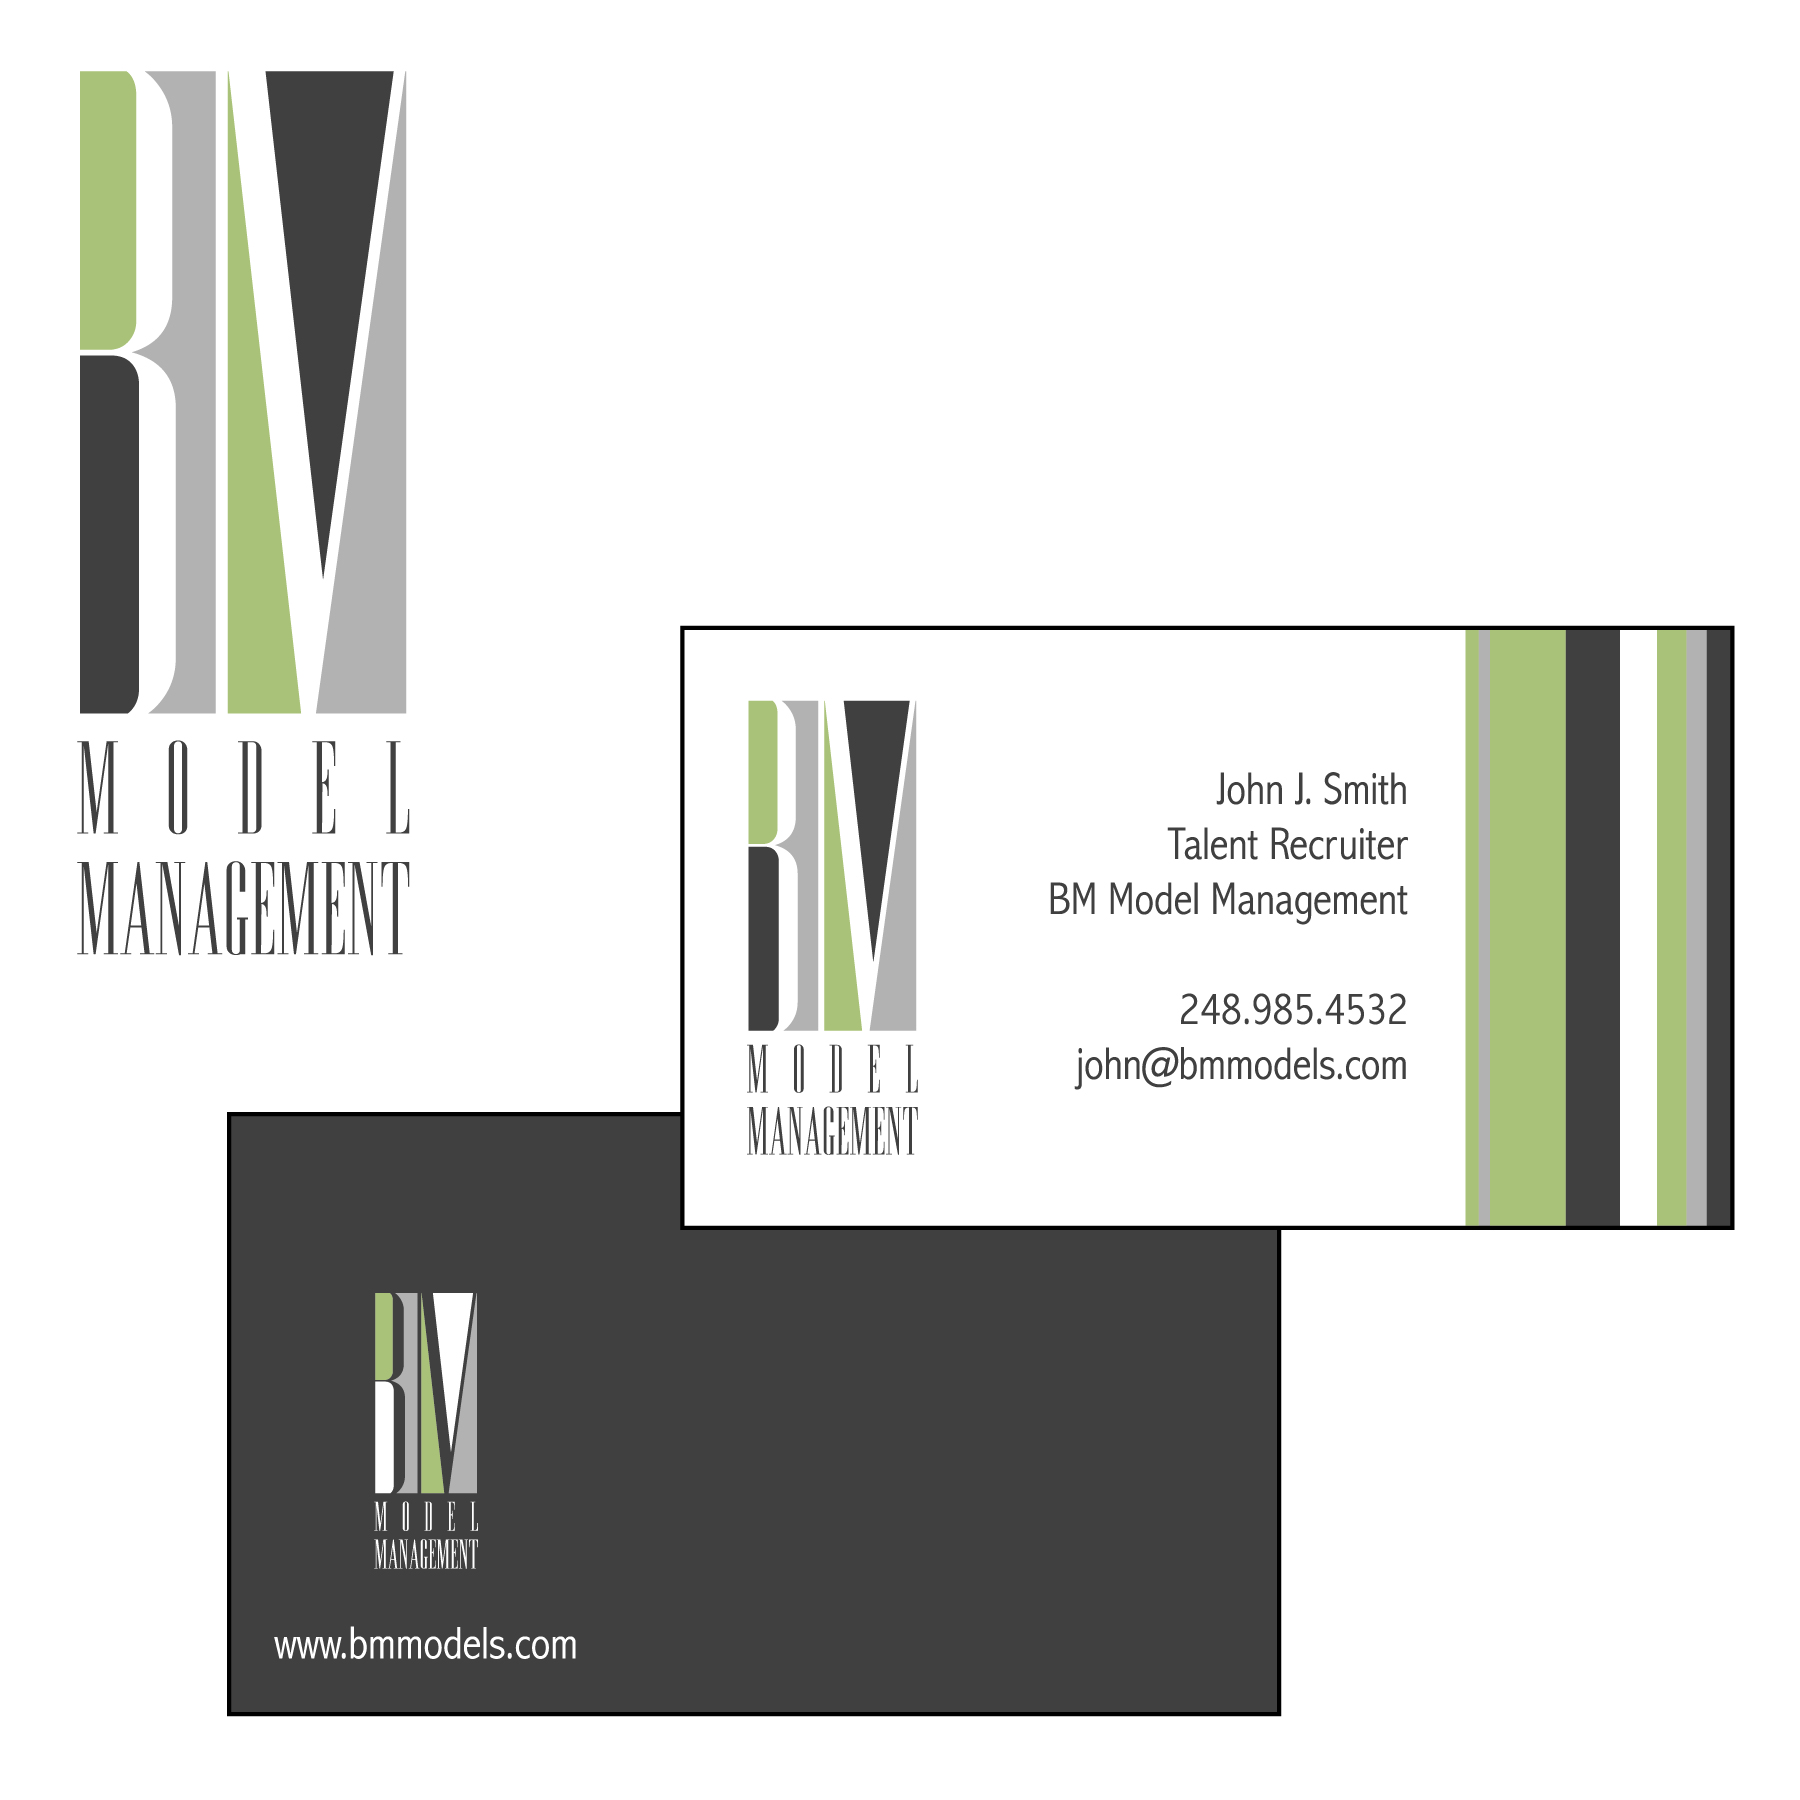 Management Business Card Design for BM Model Management by Alanna ...